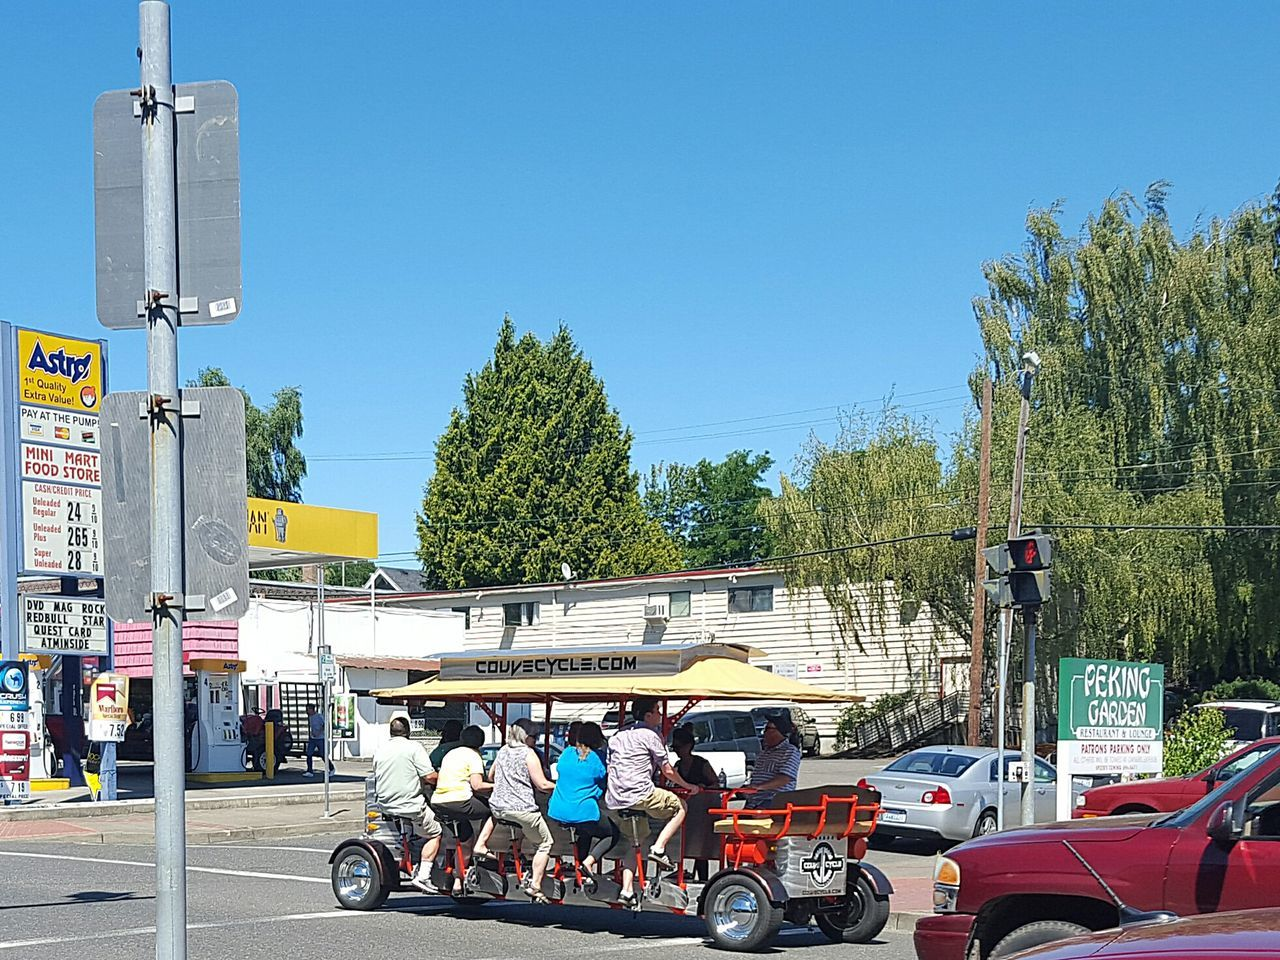 Couv Cycle down Main Street Mode Of Transport Land Vehicle Transportation City Street Pedal Power Pedalcar Pedal Pedalling Pedal Powered Unique Vehicles Summer Summertime Exercise Exploring The City Exploring The City Streets Pacific Northwest  PNW Washington State PNWonderland Vancouver, Washington Vancouver Washington Vancouverwashington Vancouver Live For The Story Let's Go. Together.